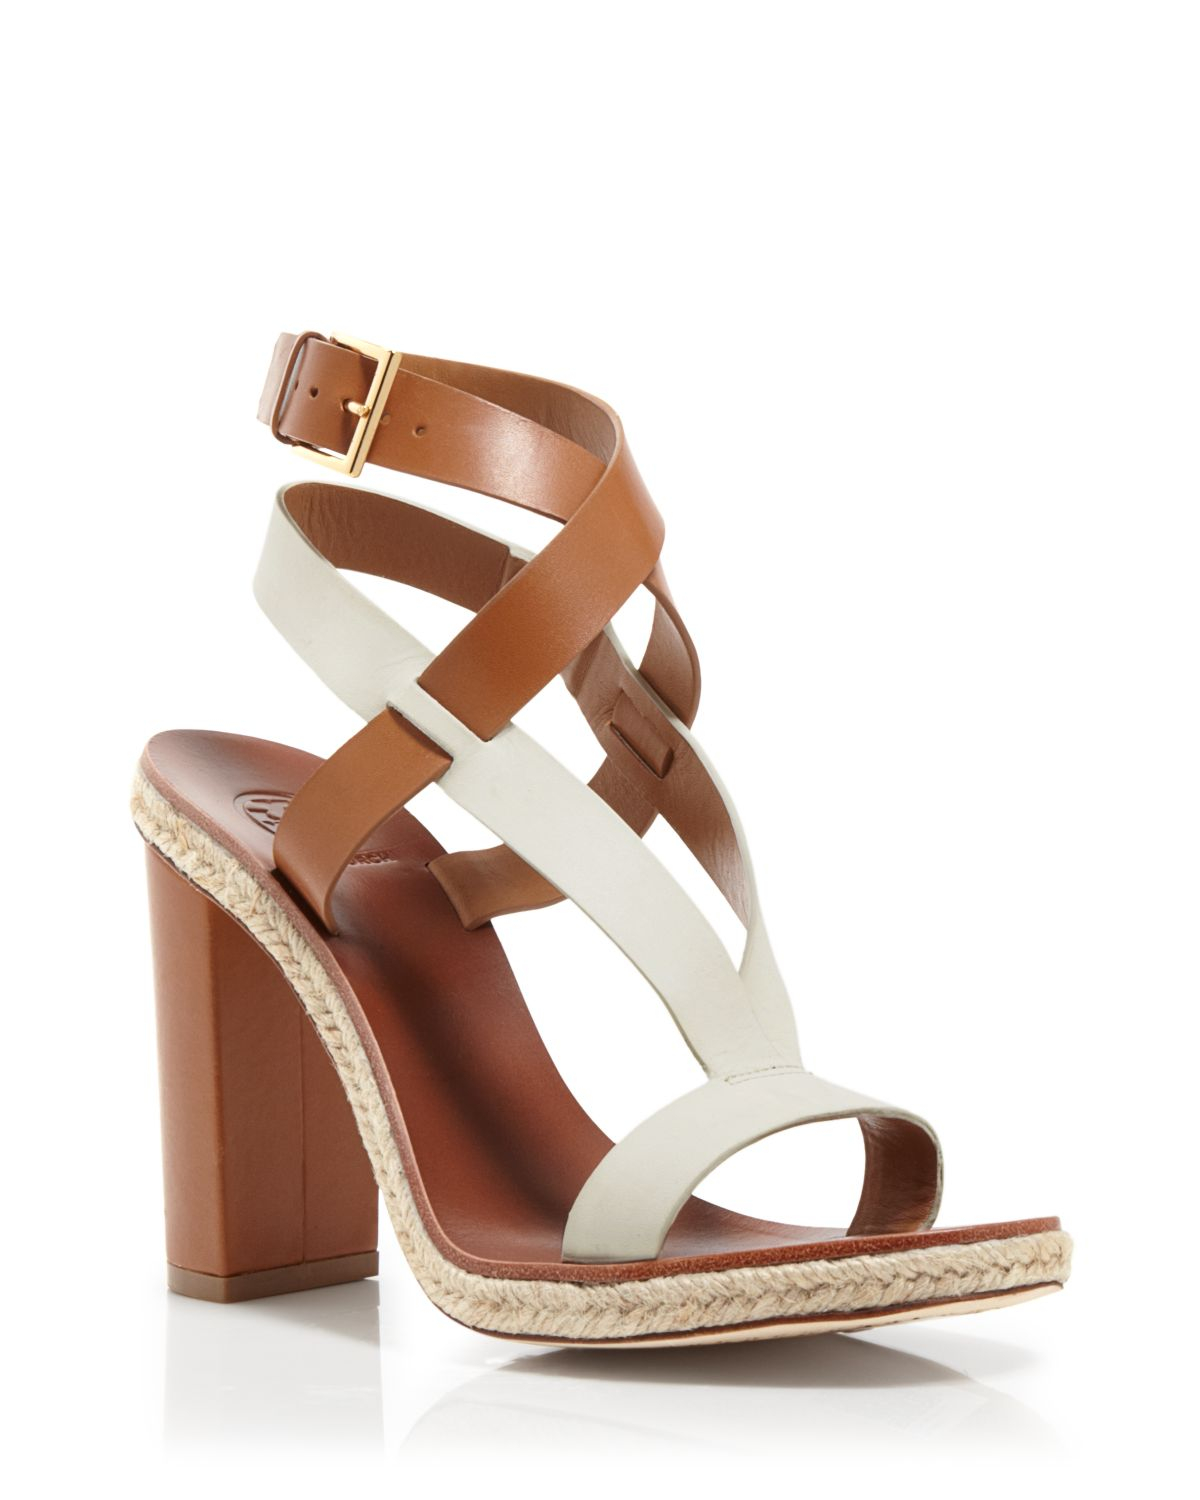 Tory Burch Two Tone Strappy Sandals Marbella High Heel